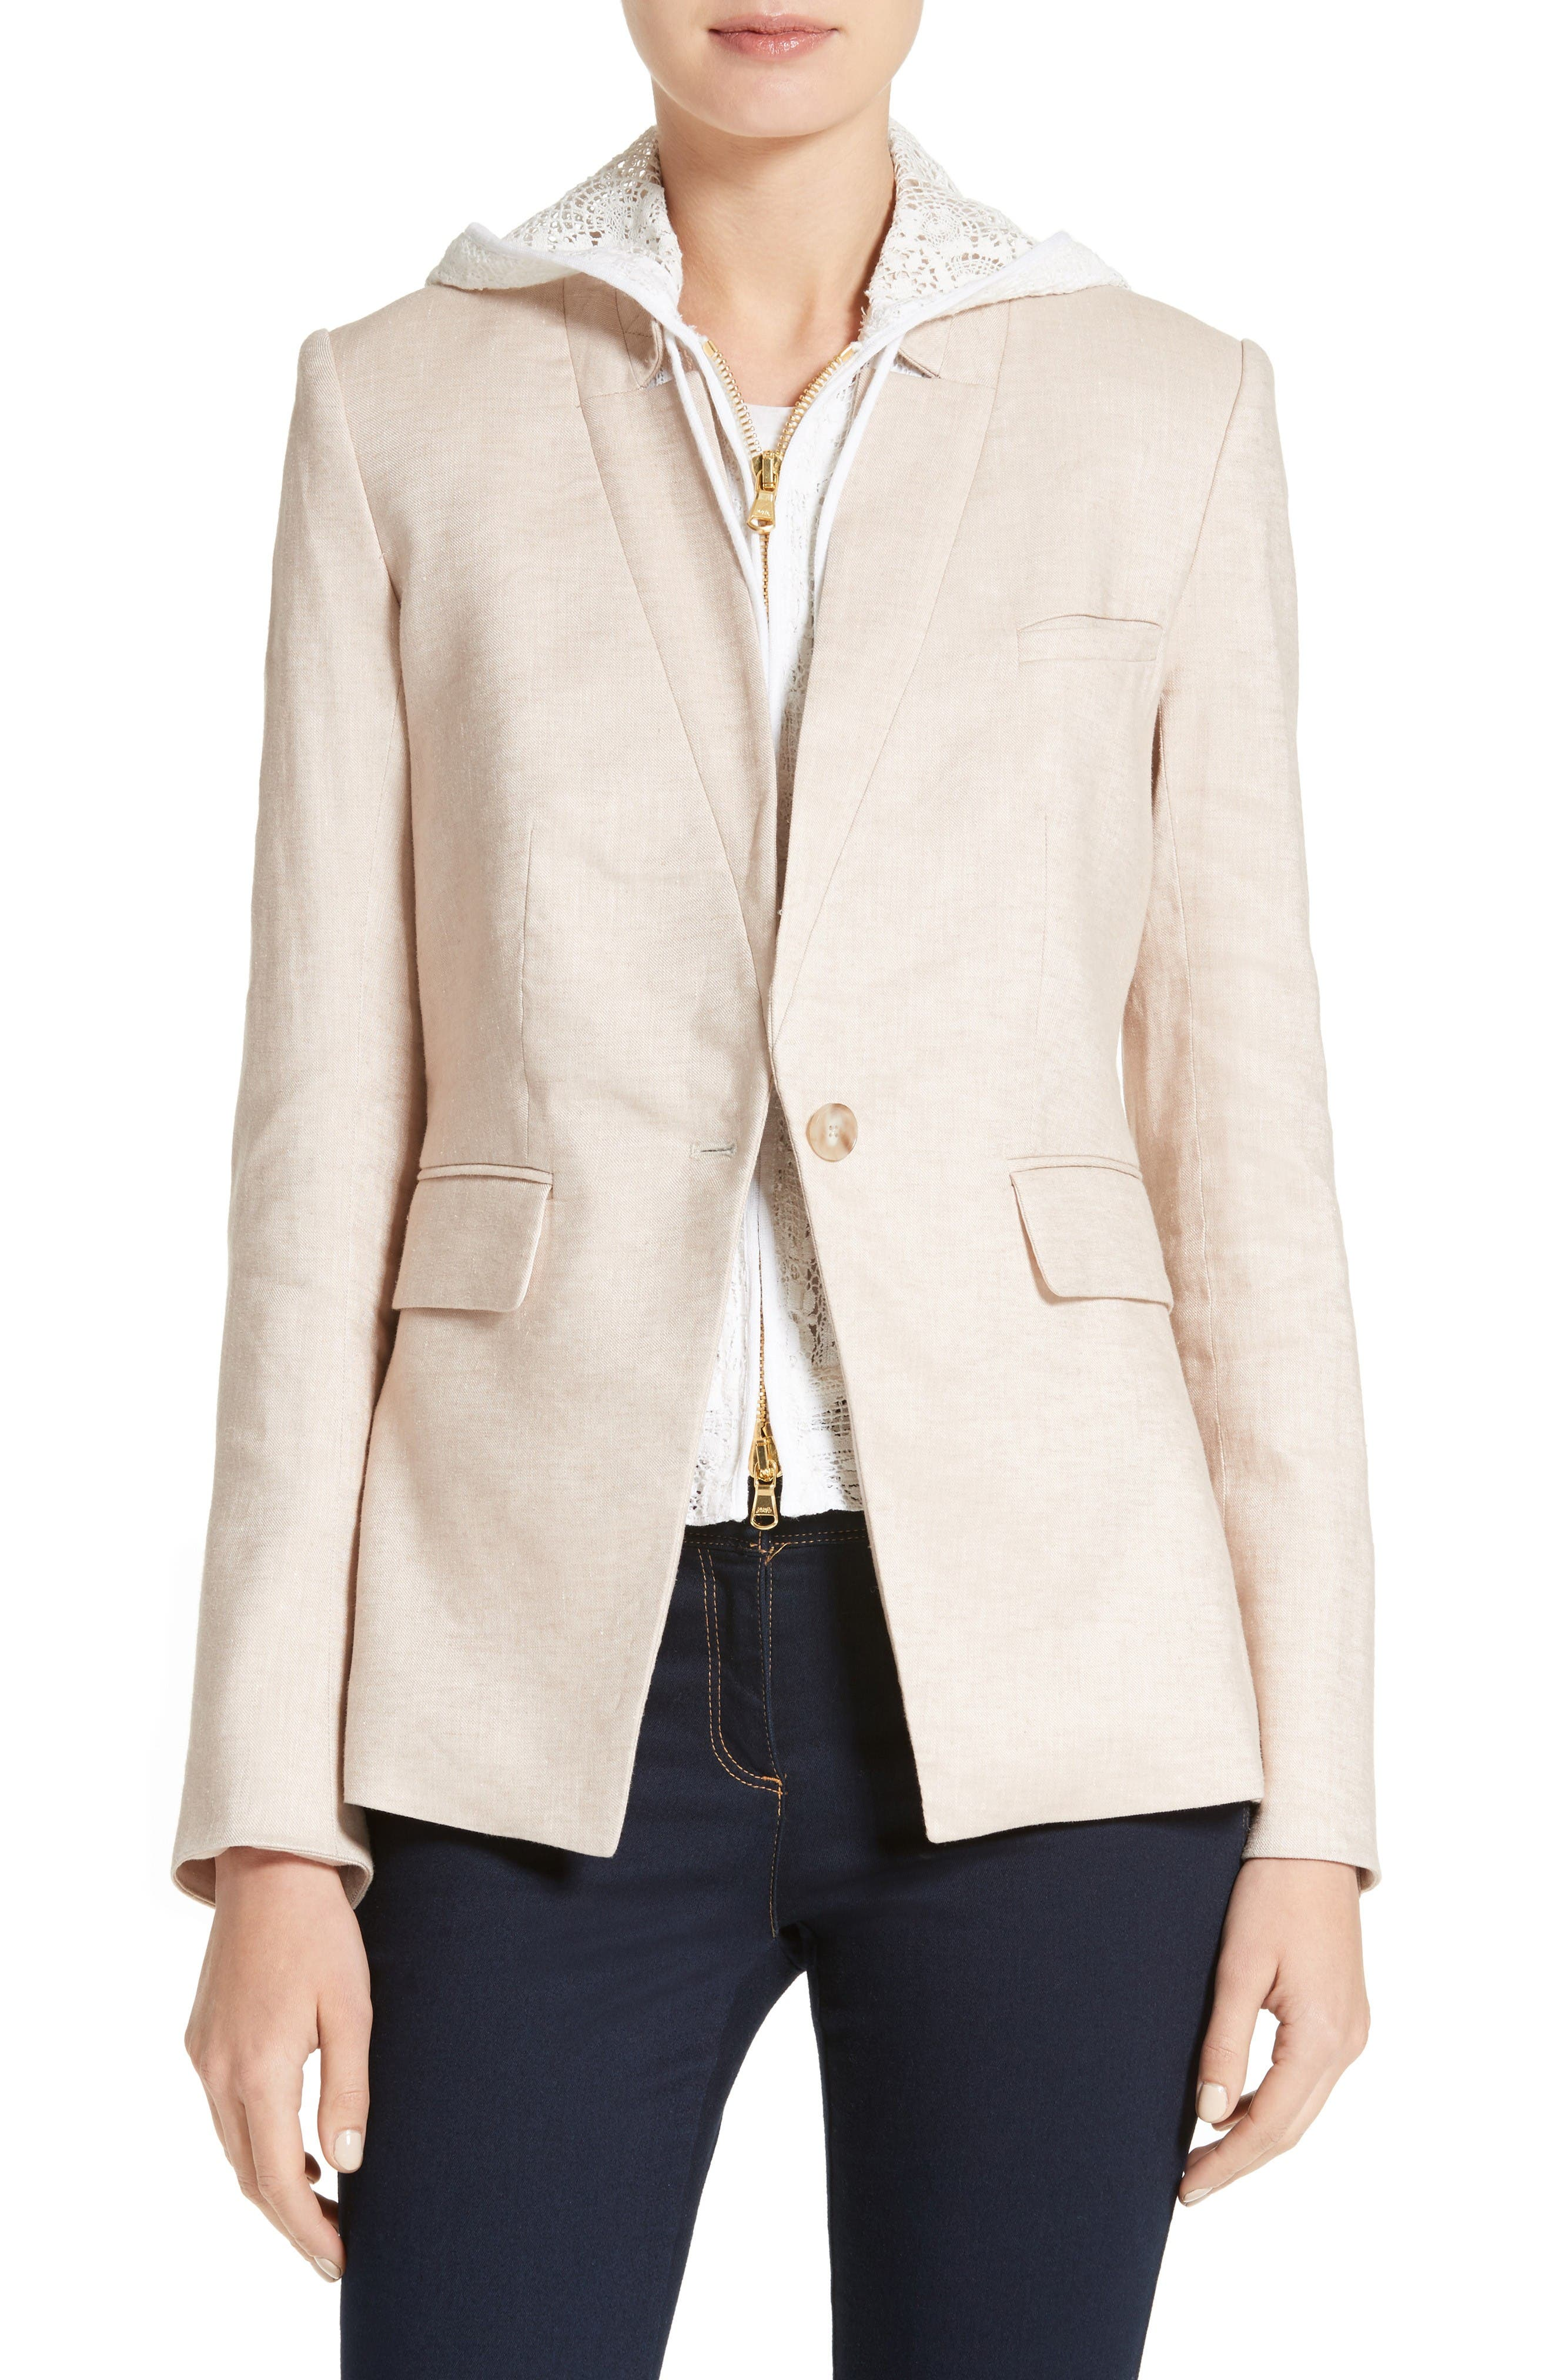 Alternate Image 1 Selected - Veronica Beard Turn-Up Collar Jacket